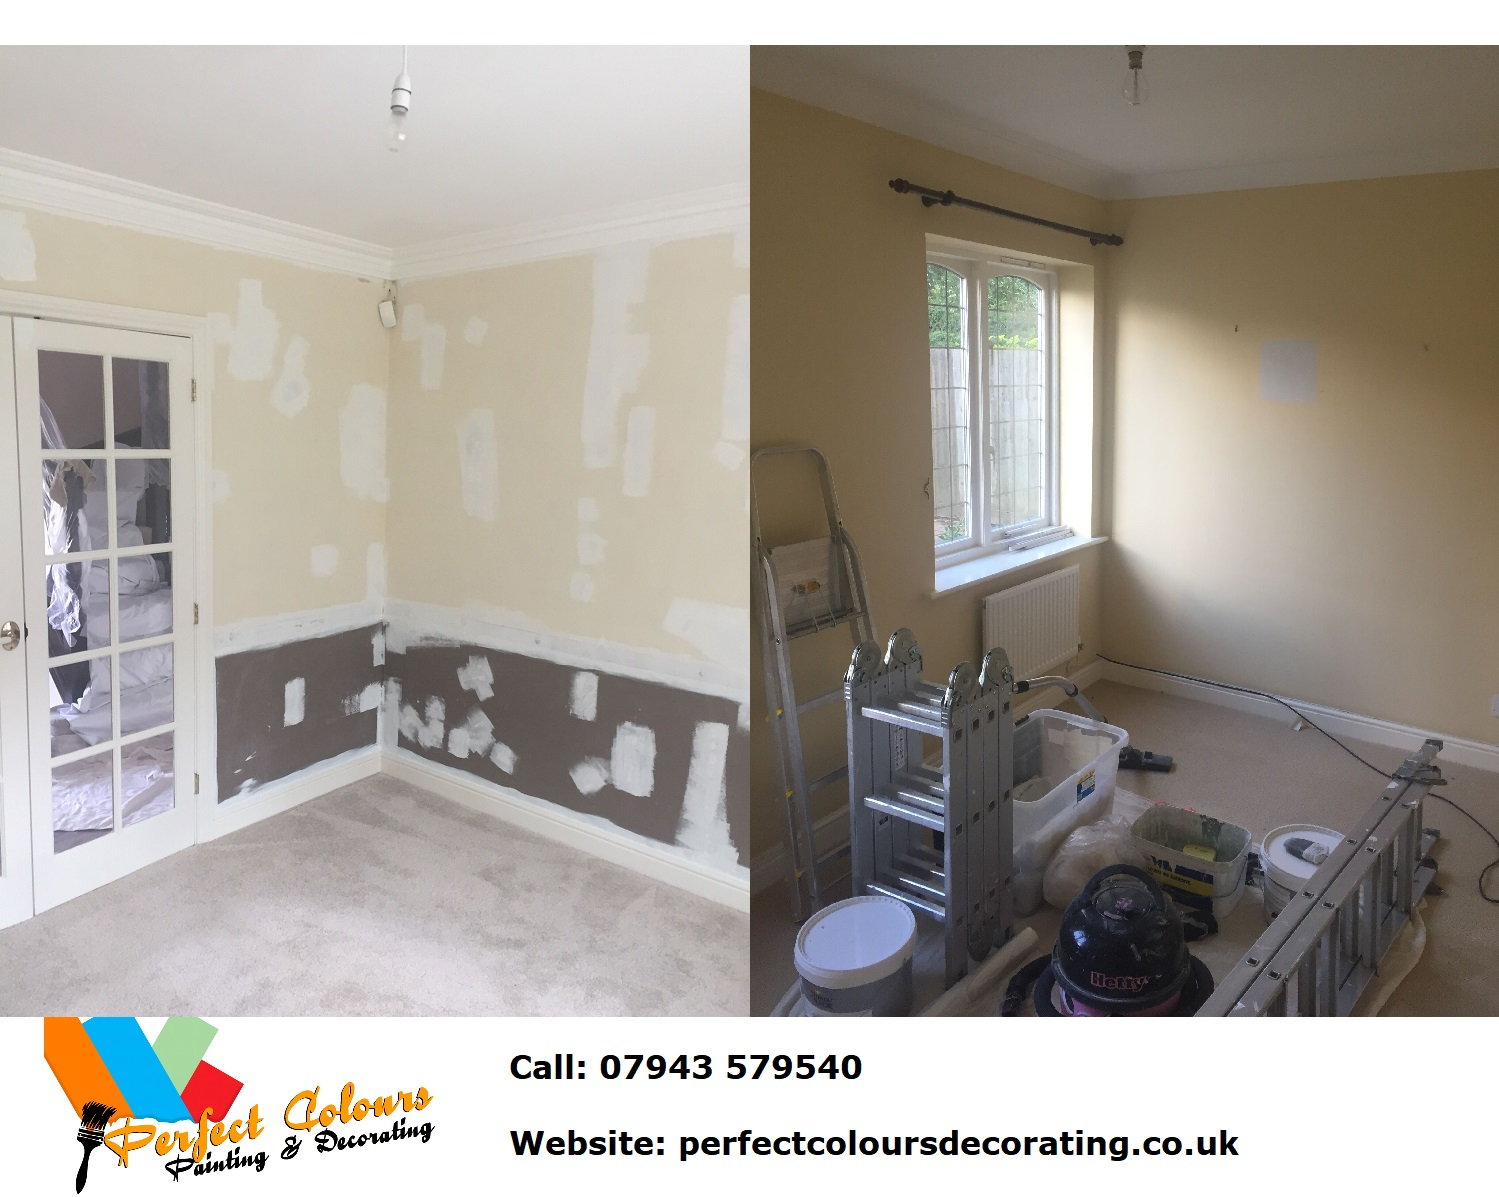 End Of Tenancy Milton Keynes Decorating Painting and Plastering